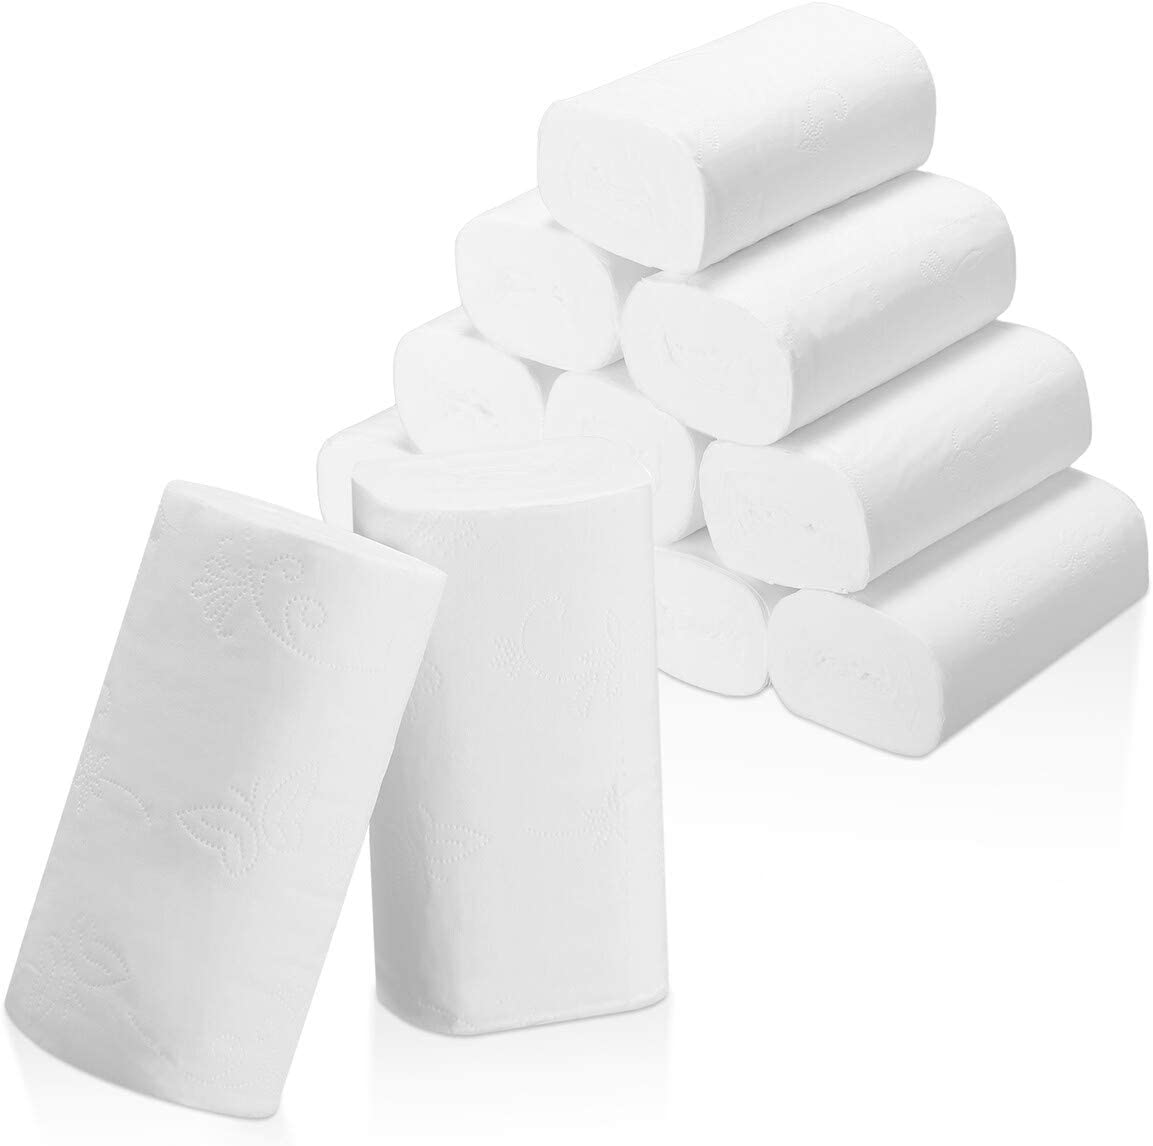 Strong and Highly Absorbent Hand Towels for Daily Use 4-Ply Embossed Toilet Paper Rolls,Soft Jumbo Rolls Commercial Home Kitchen Toilet Tissue Soft 10 Rolls Toilet Paper